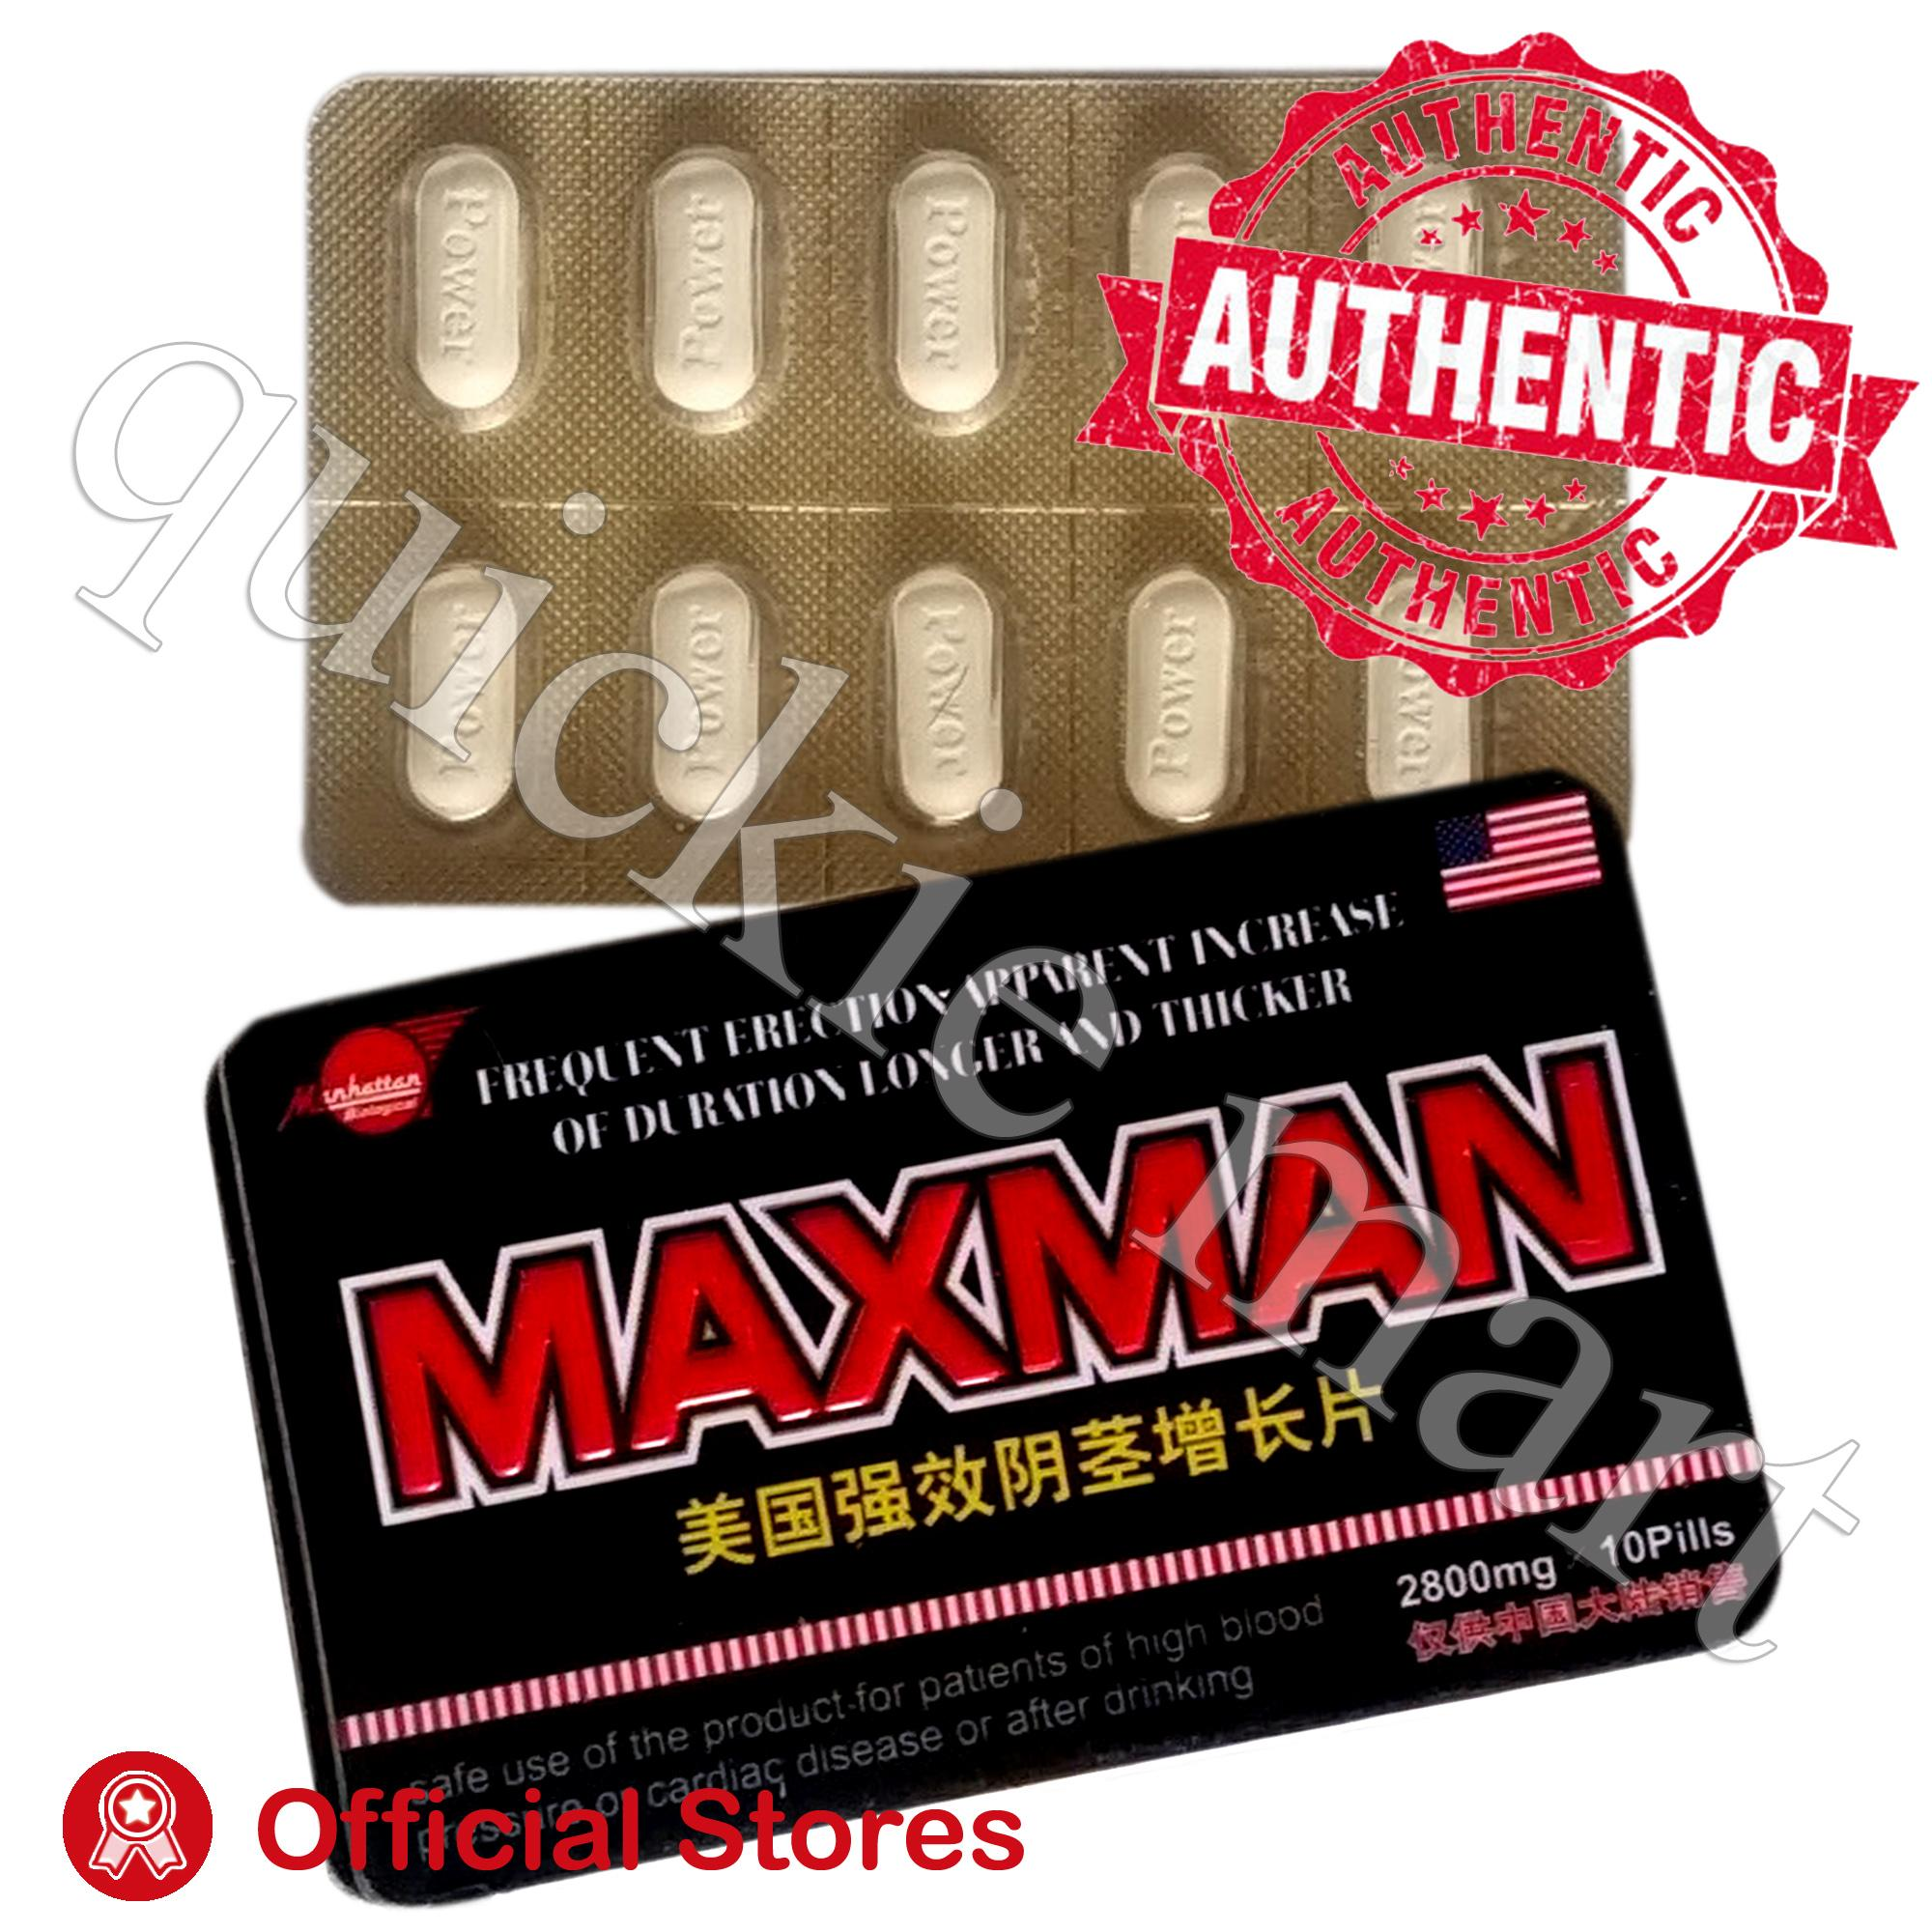 Sex Enhancement Supplement Batch 10pcs Power Pills Tablet For Men Man Origina Increases Sexual Stamina Natural And Safe By Quickie Mart.